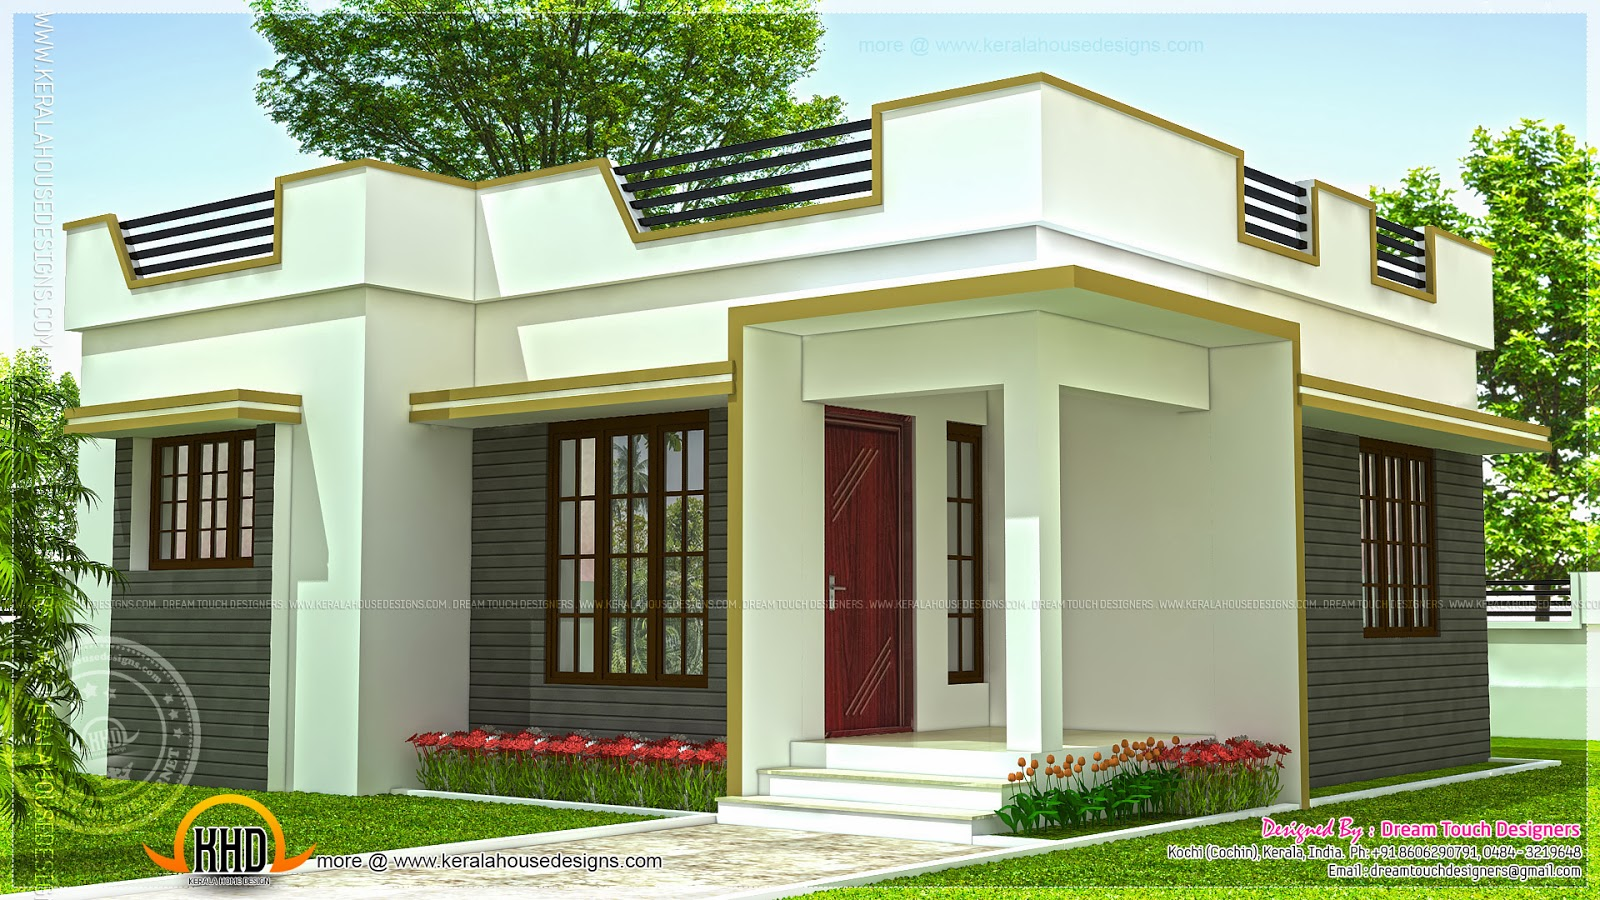 Modern single storey house designs 2014 2015 fashion trends 2015 2016 ntlo pinterest trends 2015 2016 modern and house